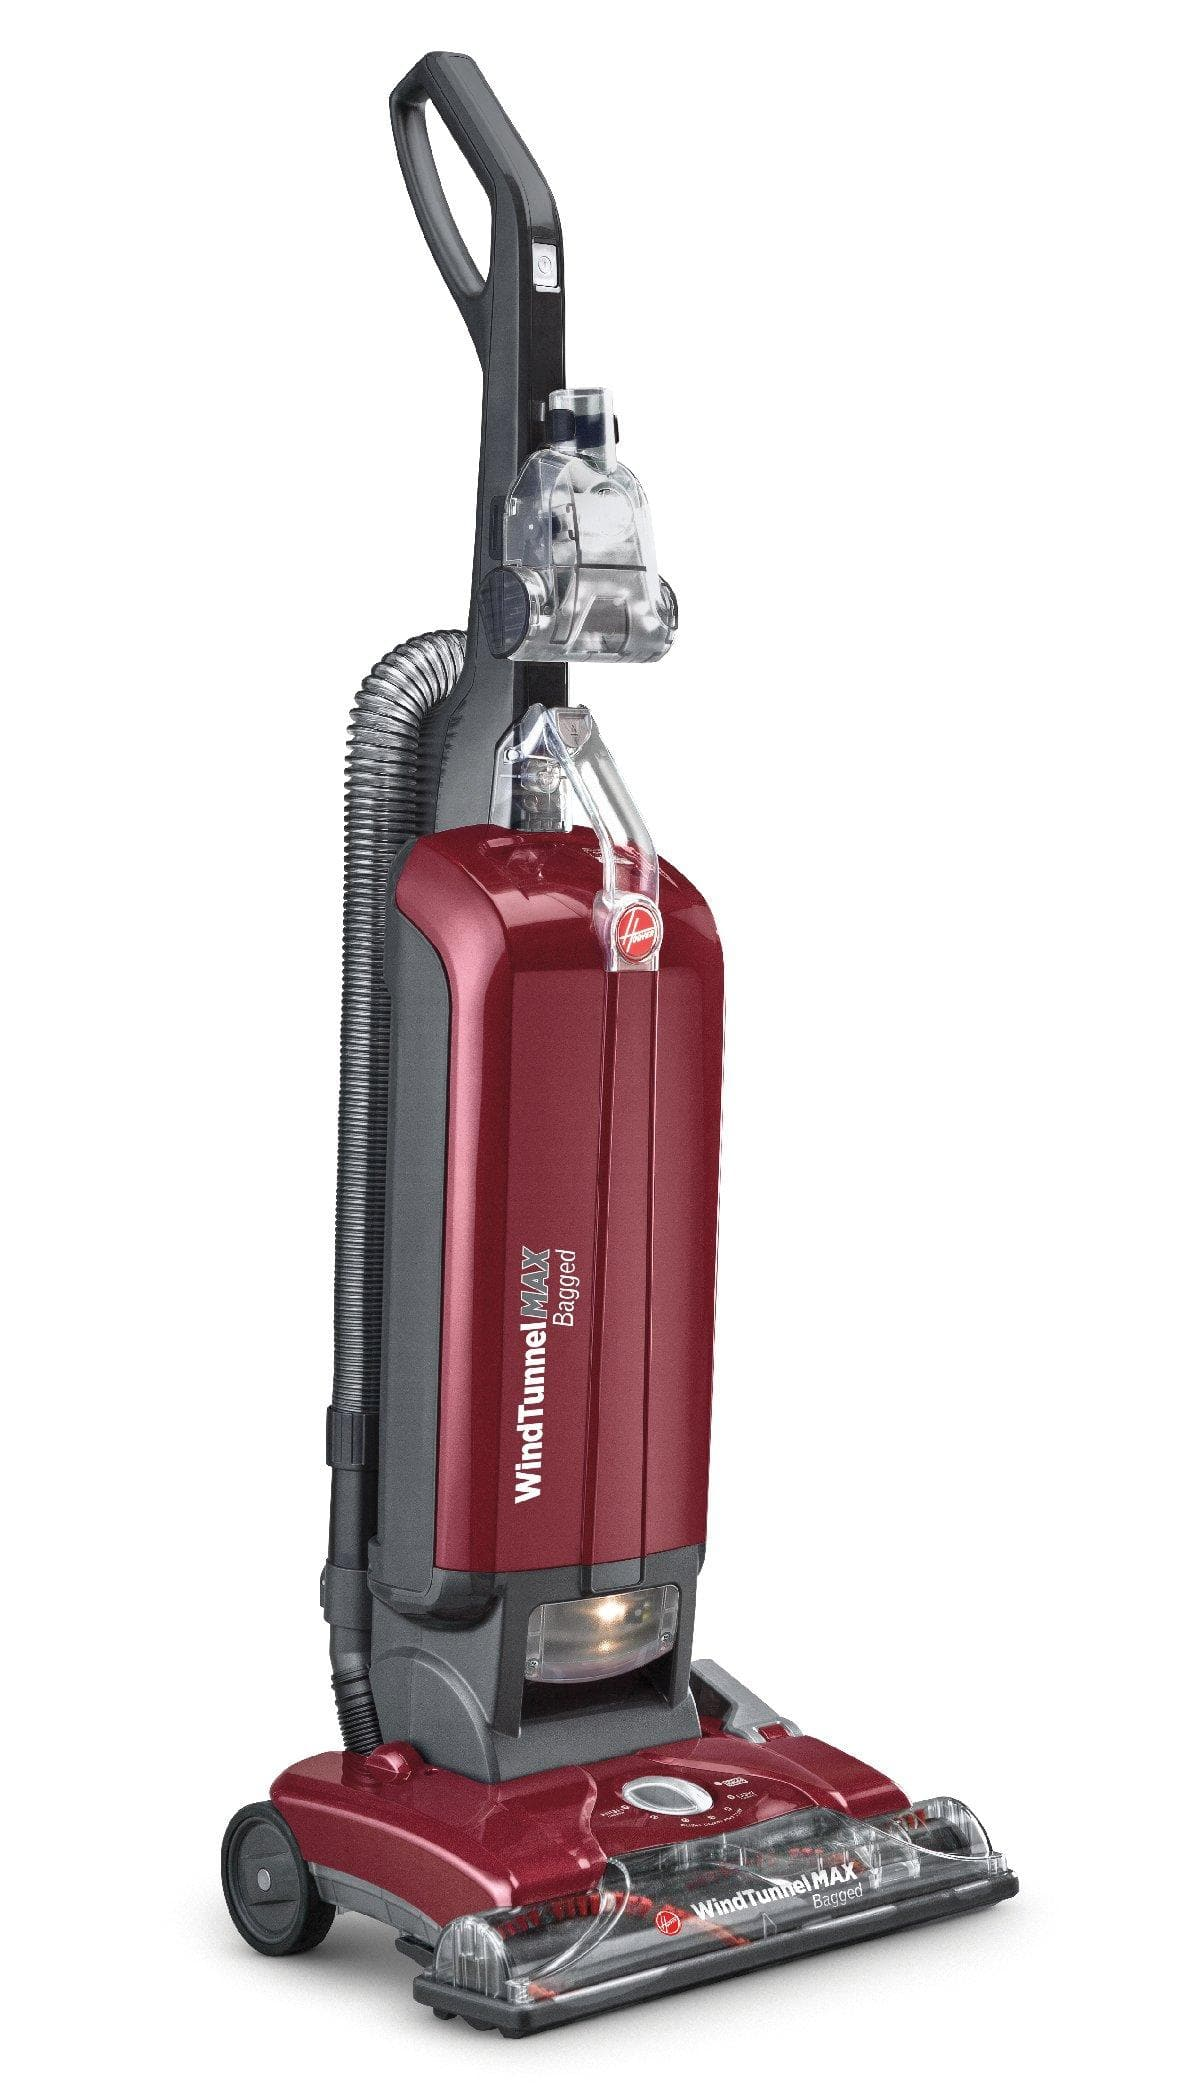 Hoover Windtunnel Max Bagged Upright, $73 from Hoover eBay Store $72.99